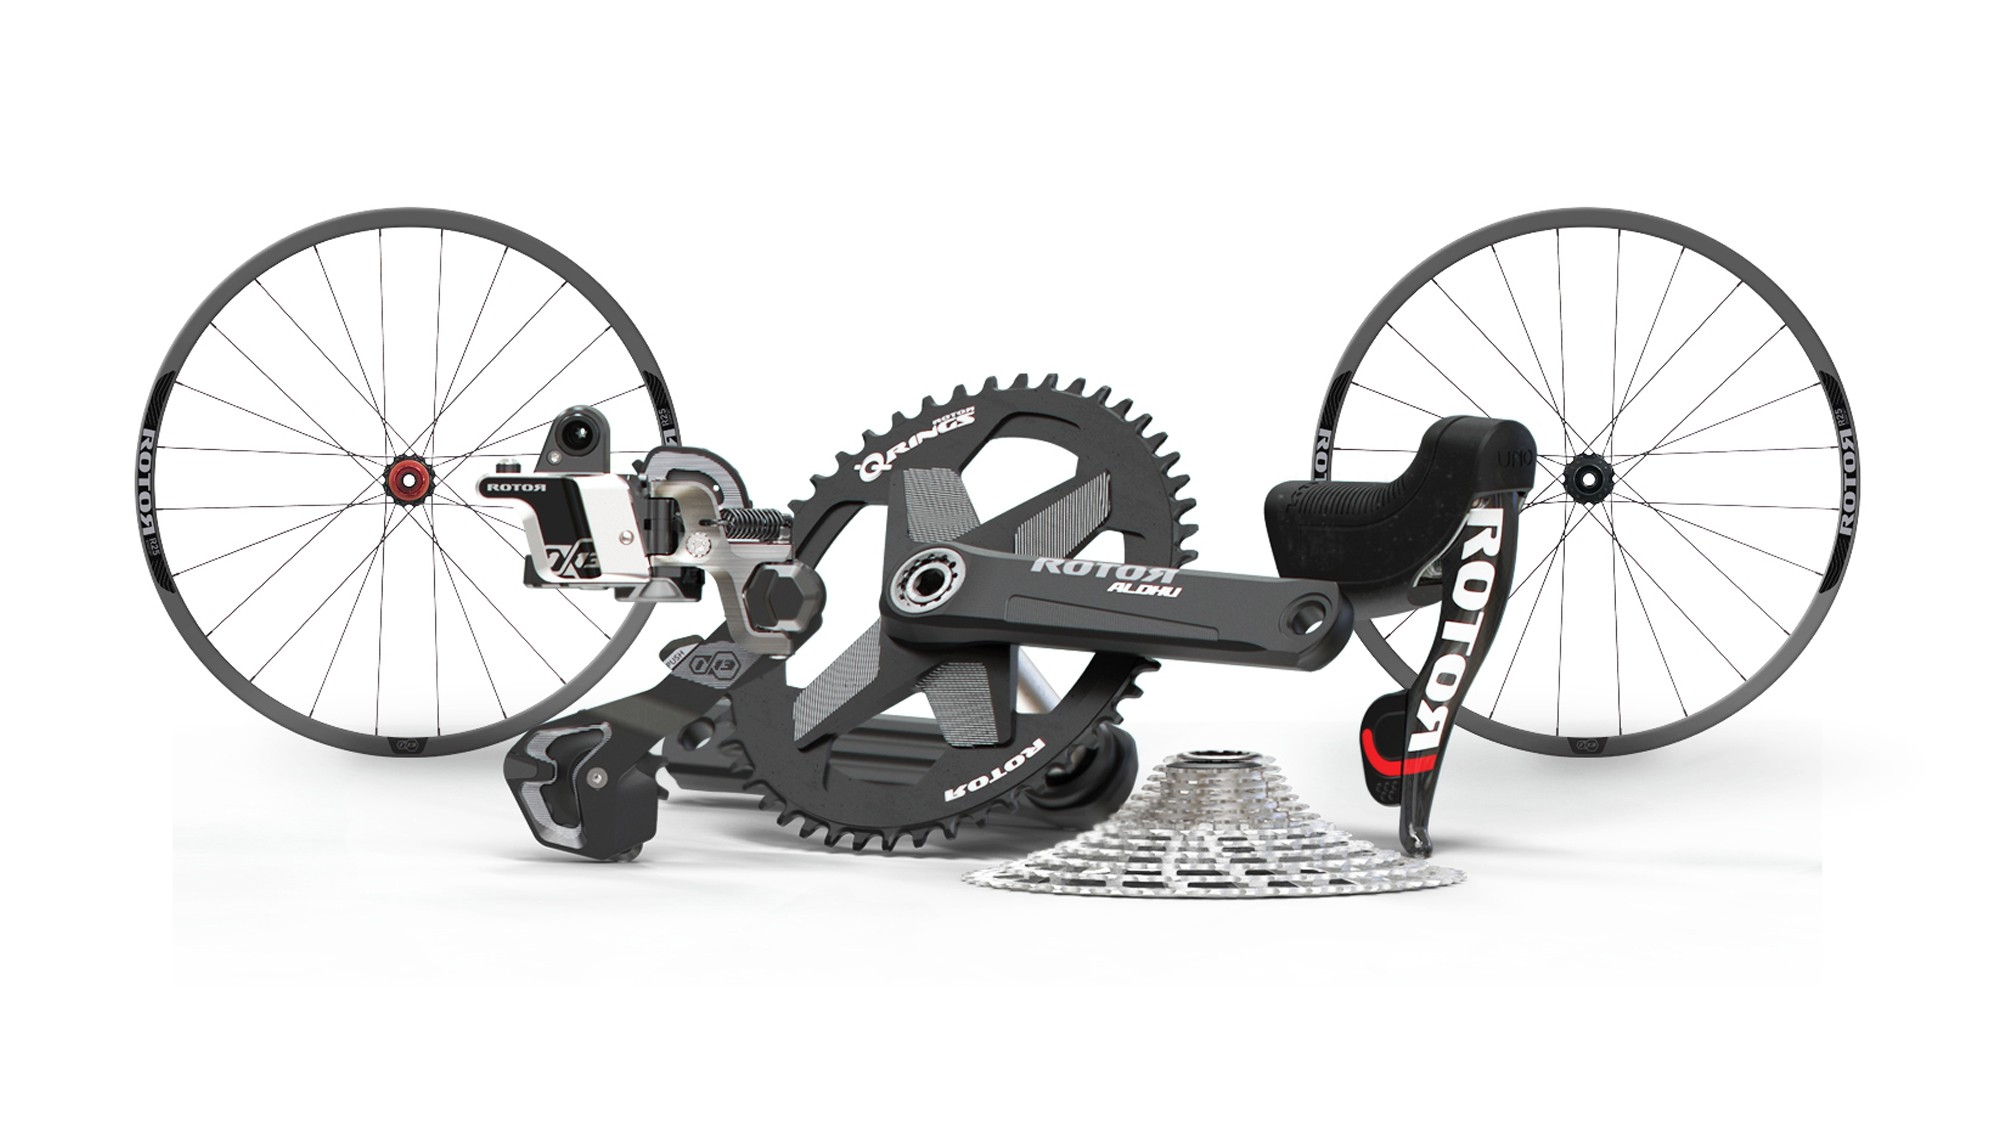 The Adventure groupset is aimed at all-round riding